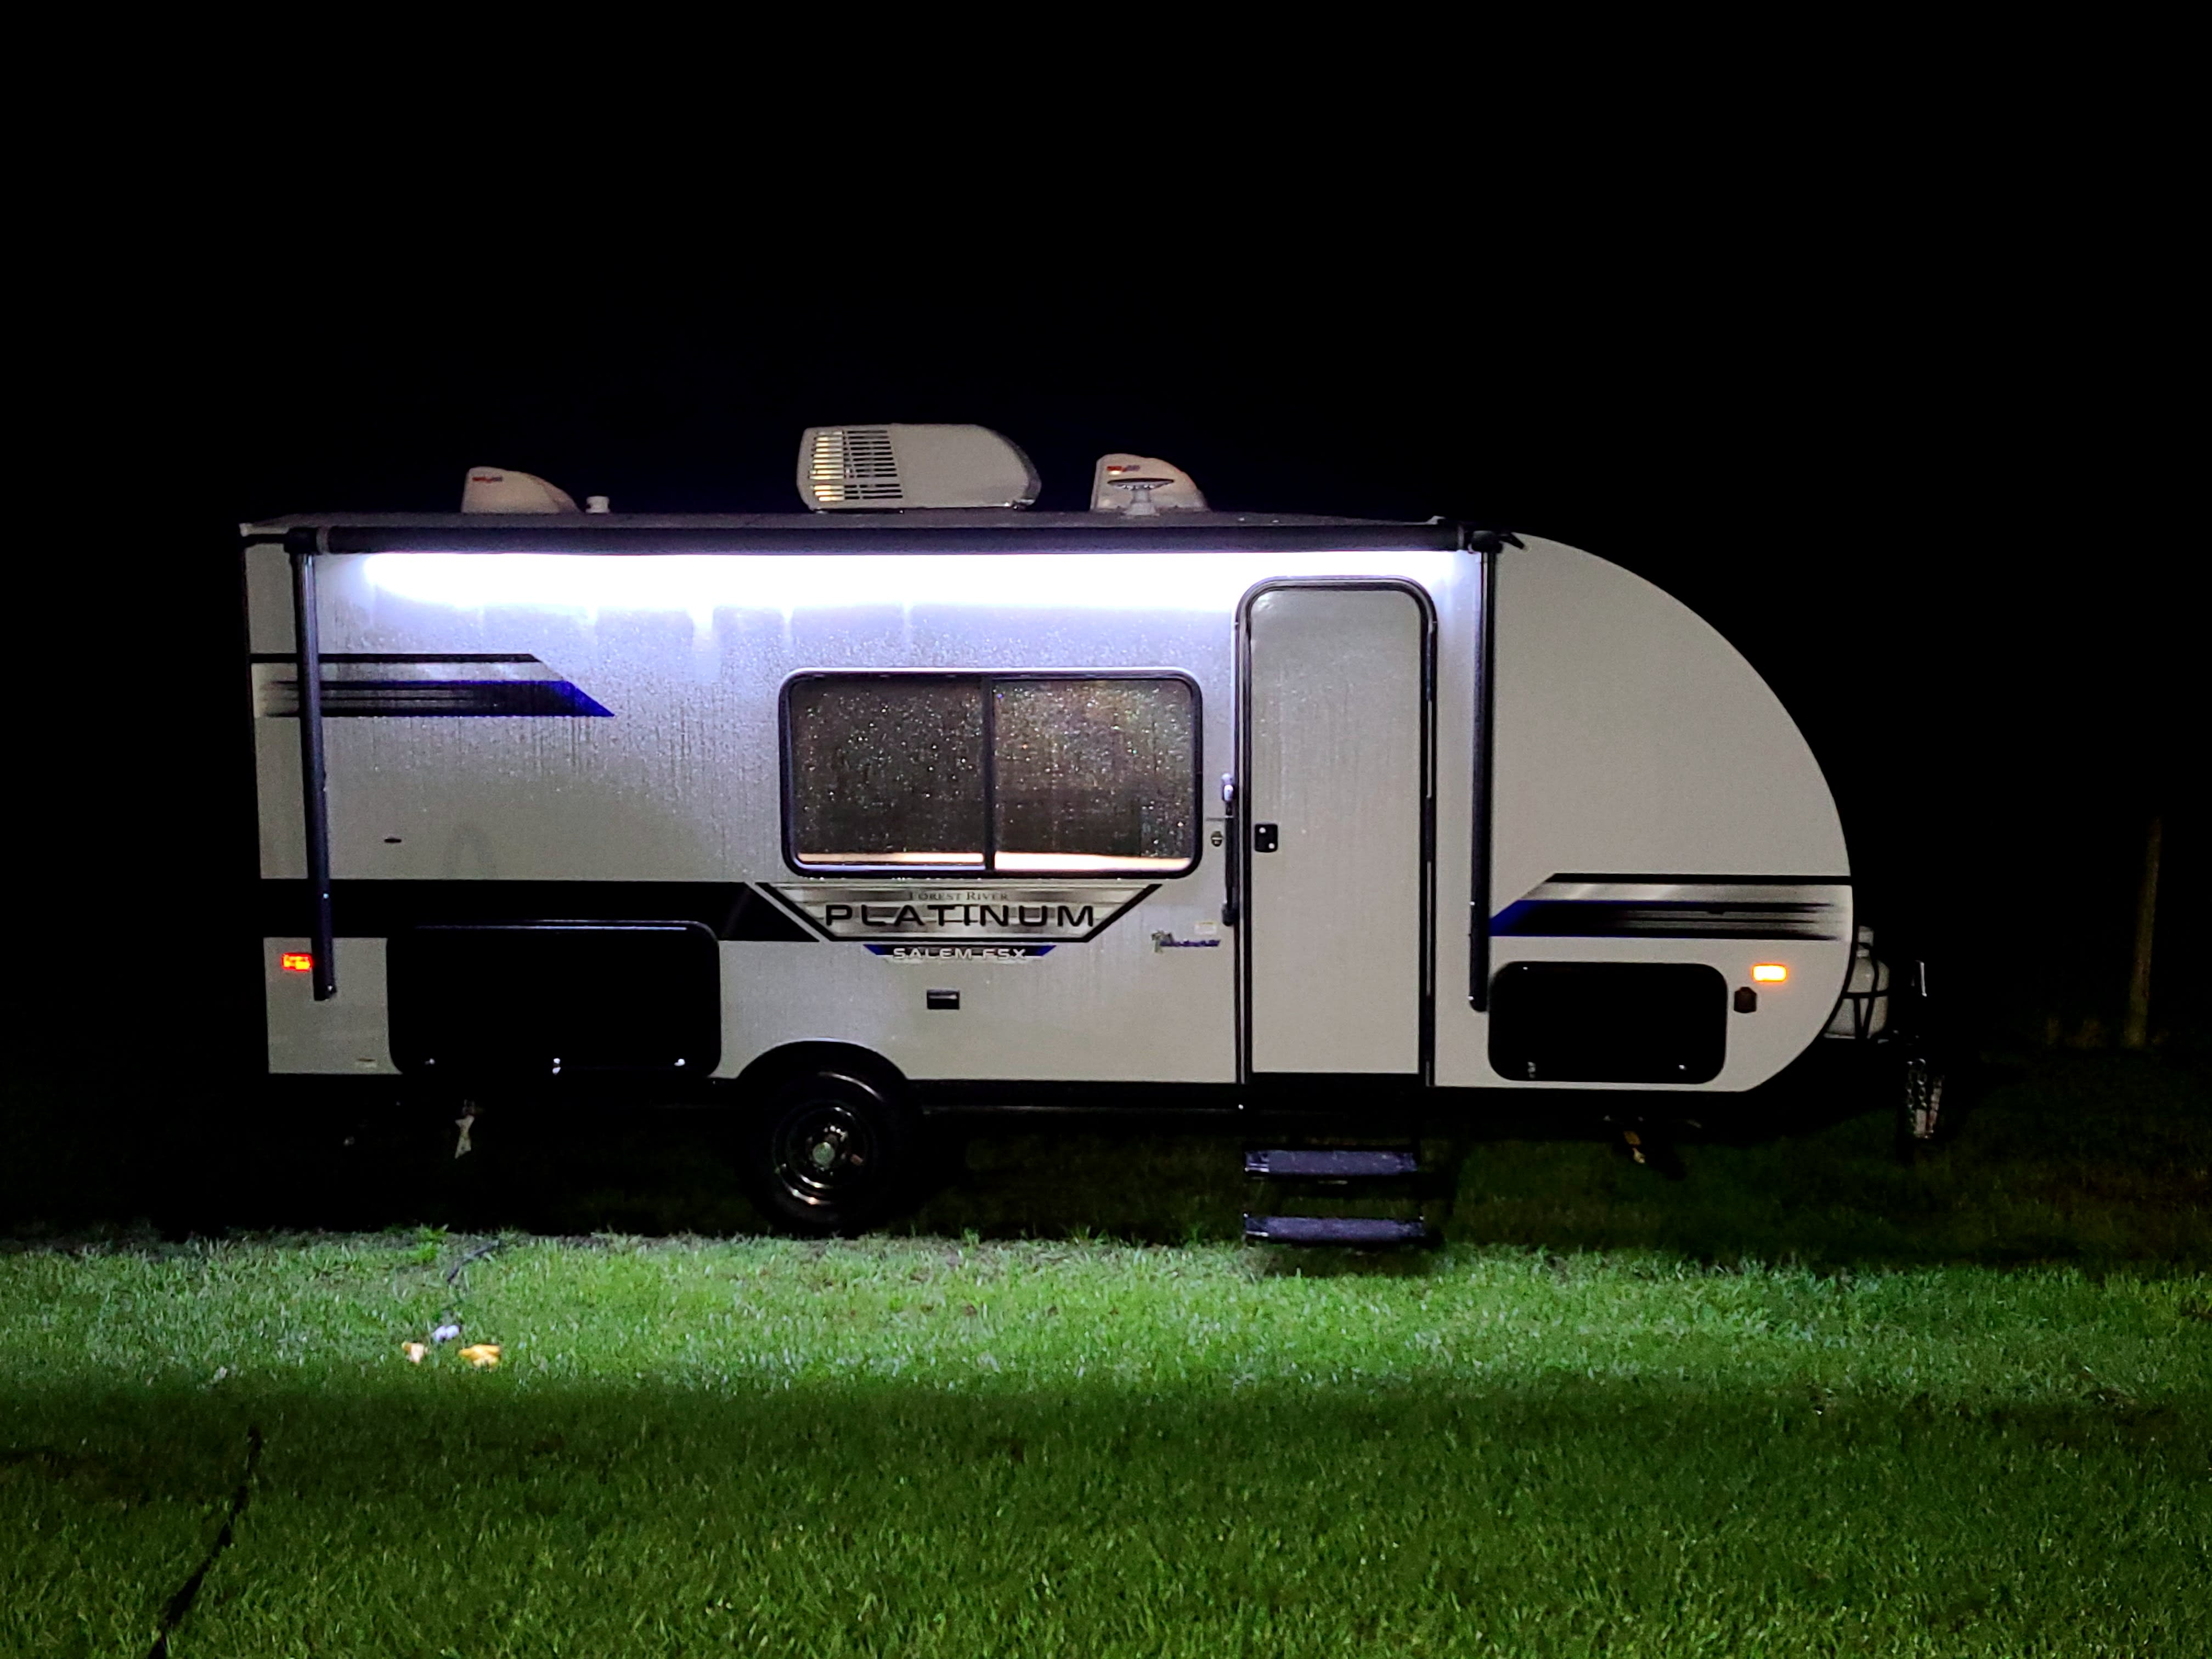 Full length awning with led lights for late night entertaining. Forest River Salem 2021